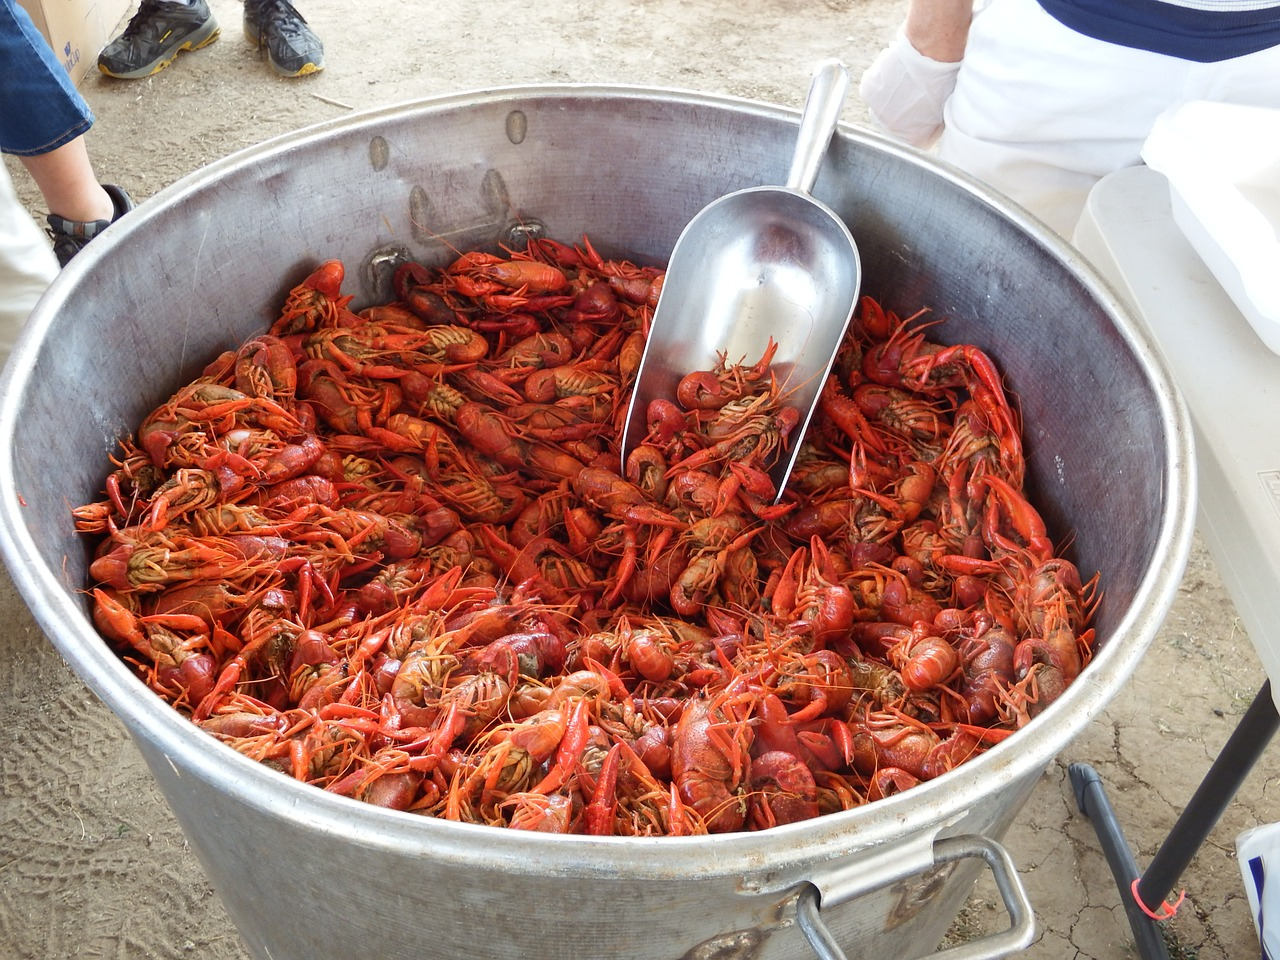 Flusskrebs Essen Louisiana Crawfish Boil Der Hit Auf Jeder Barbecue Party